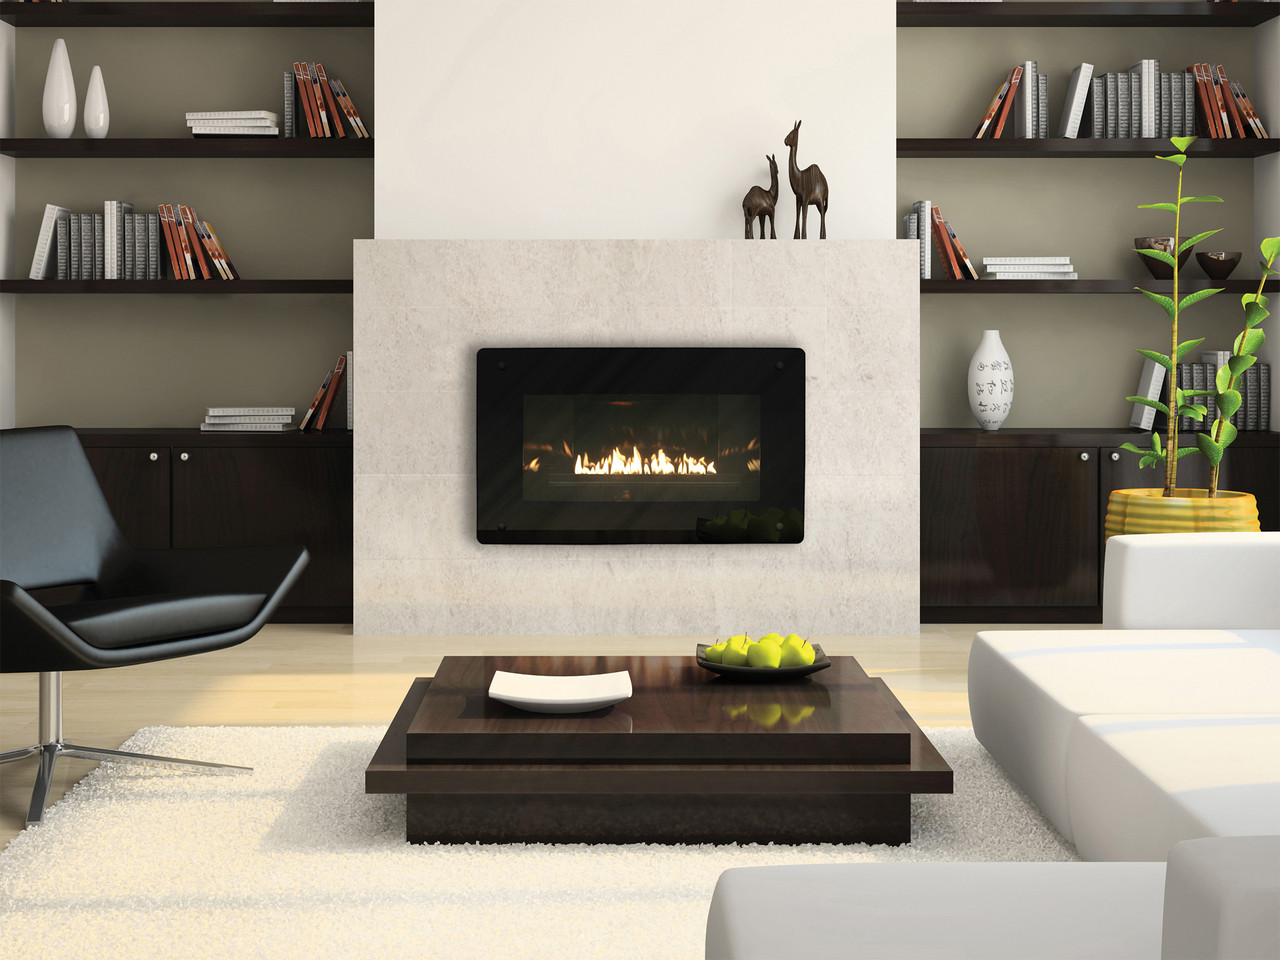 Free Fireplace Insert Empire Loft Vent Free Cleanface Insert Fireplace With Barrier Zero Clearance Millivolt Control With On Off Switch Vfl20in32